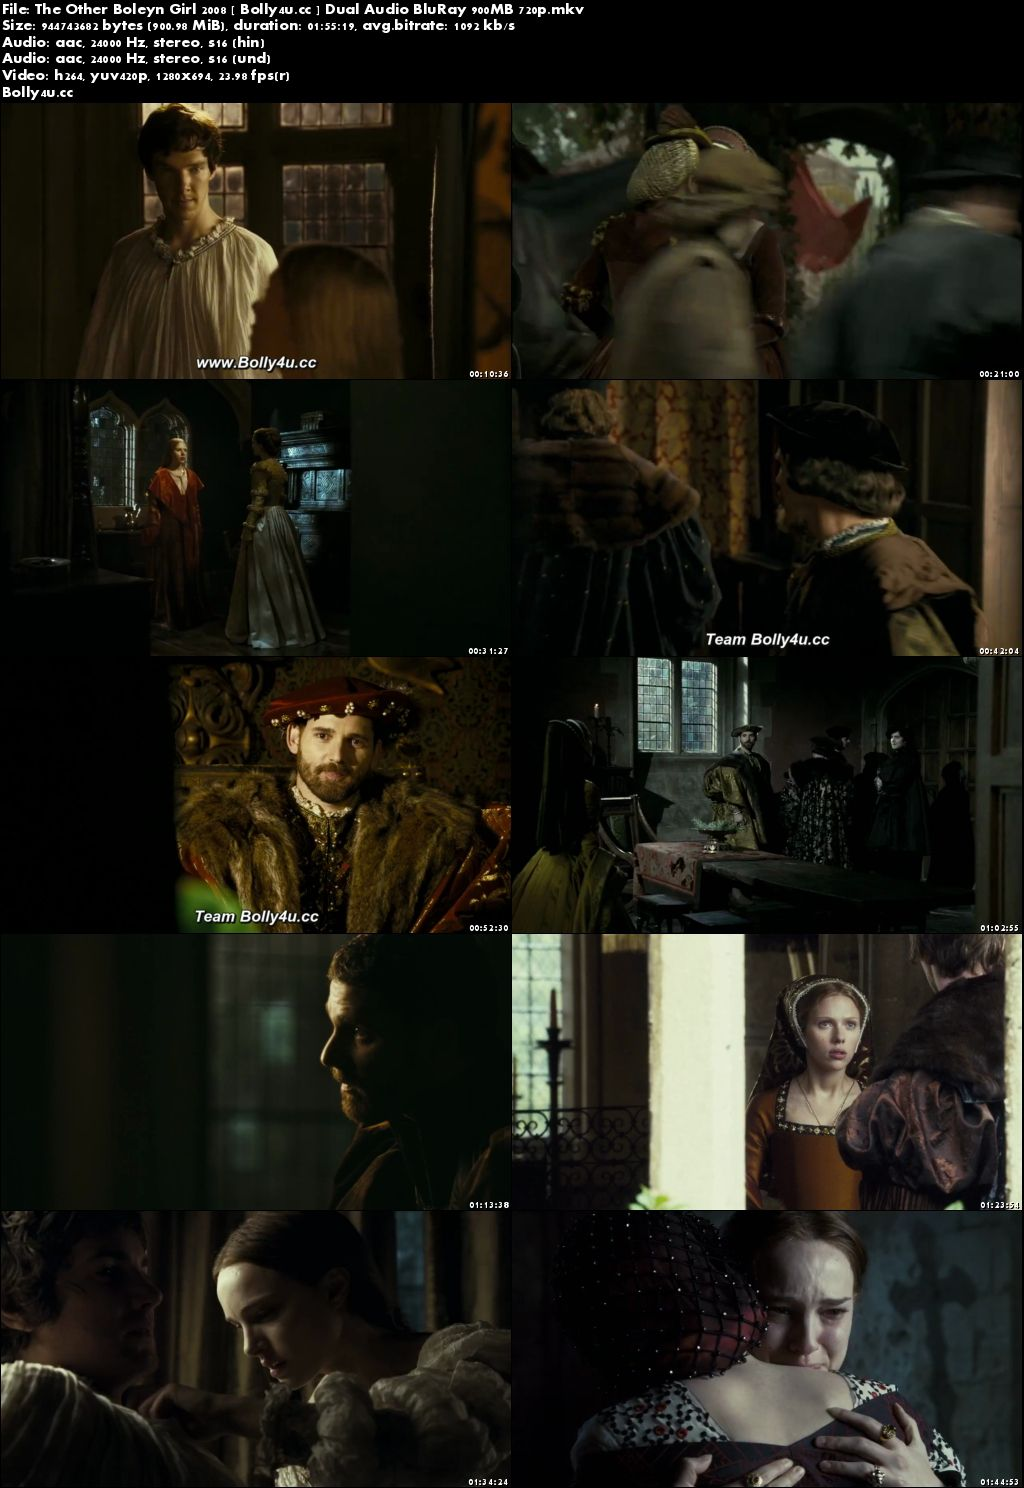 The Other Boleyn Girl 2008 BluRay 350MB Hindi Dual Audio 480p Download